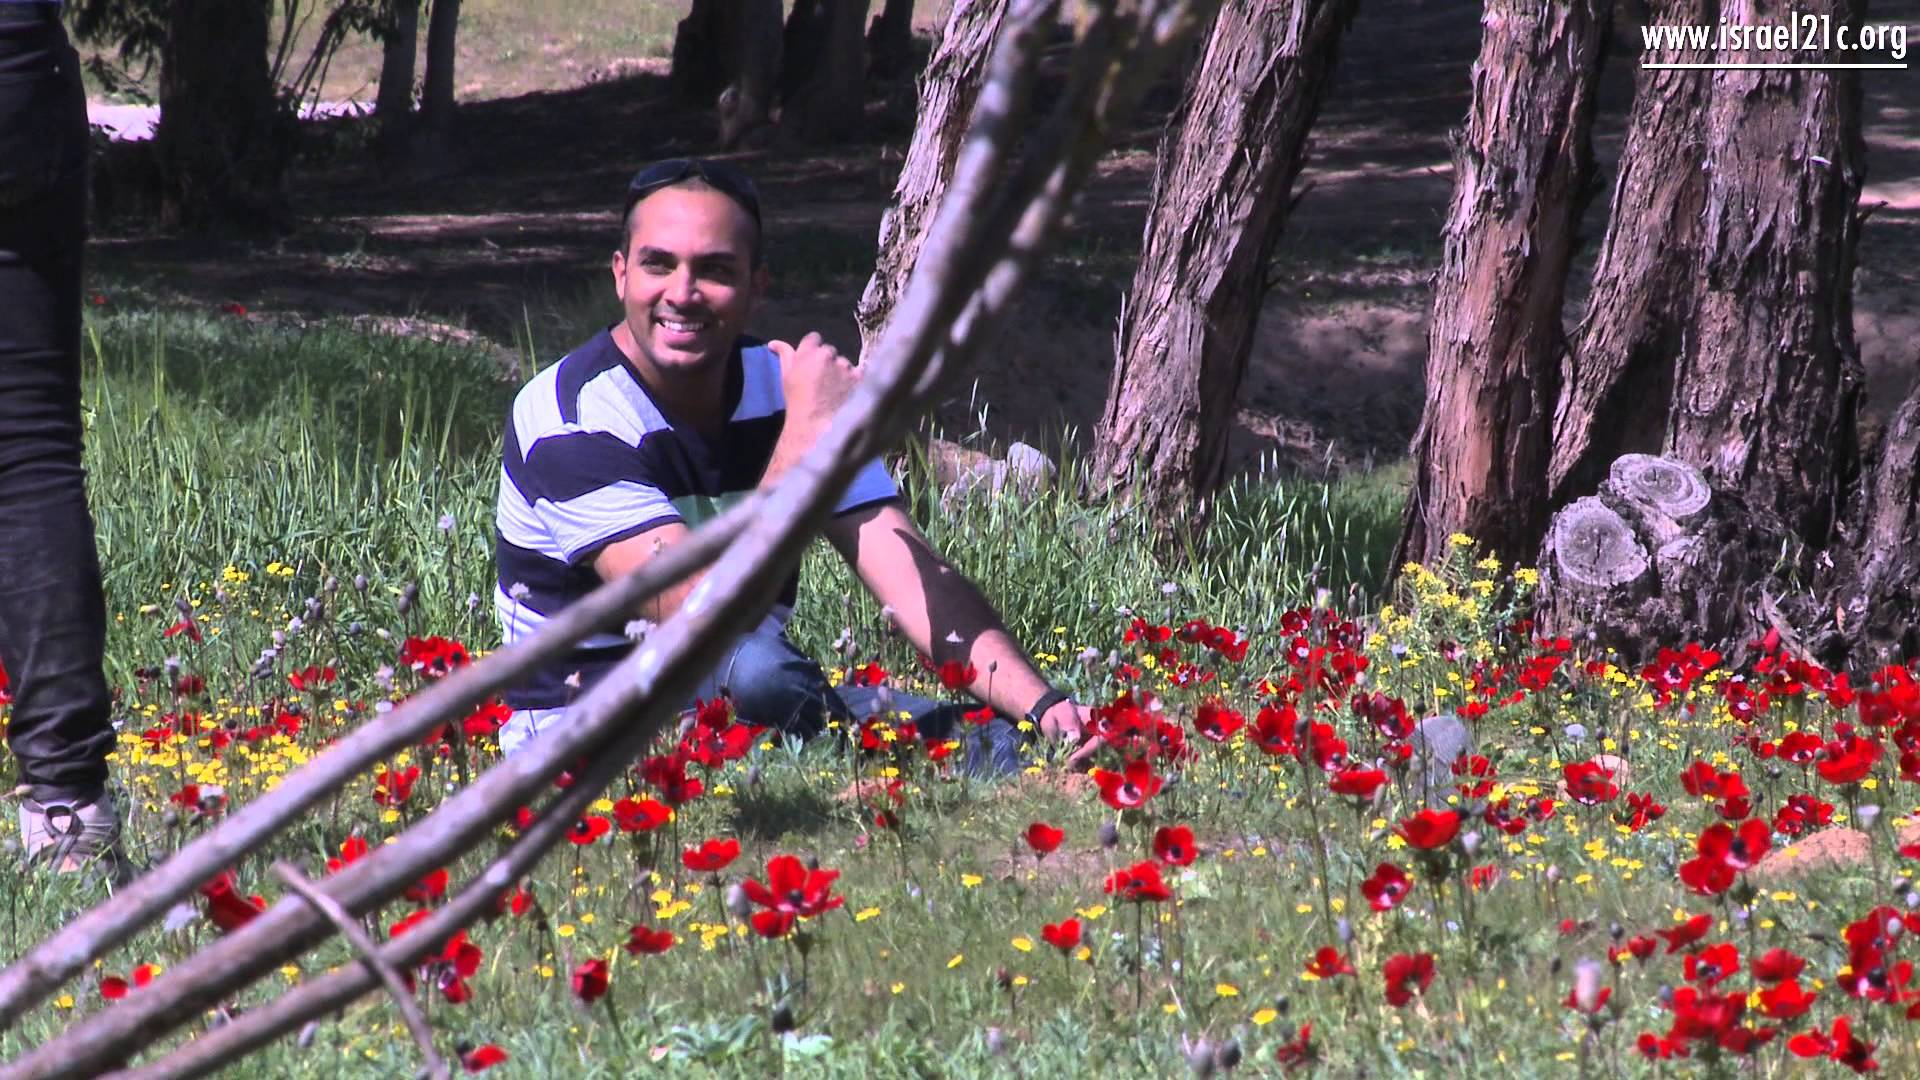 Postcard from Israel: Spring in the Negev